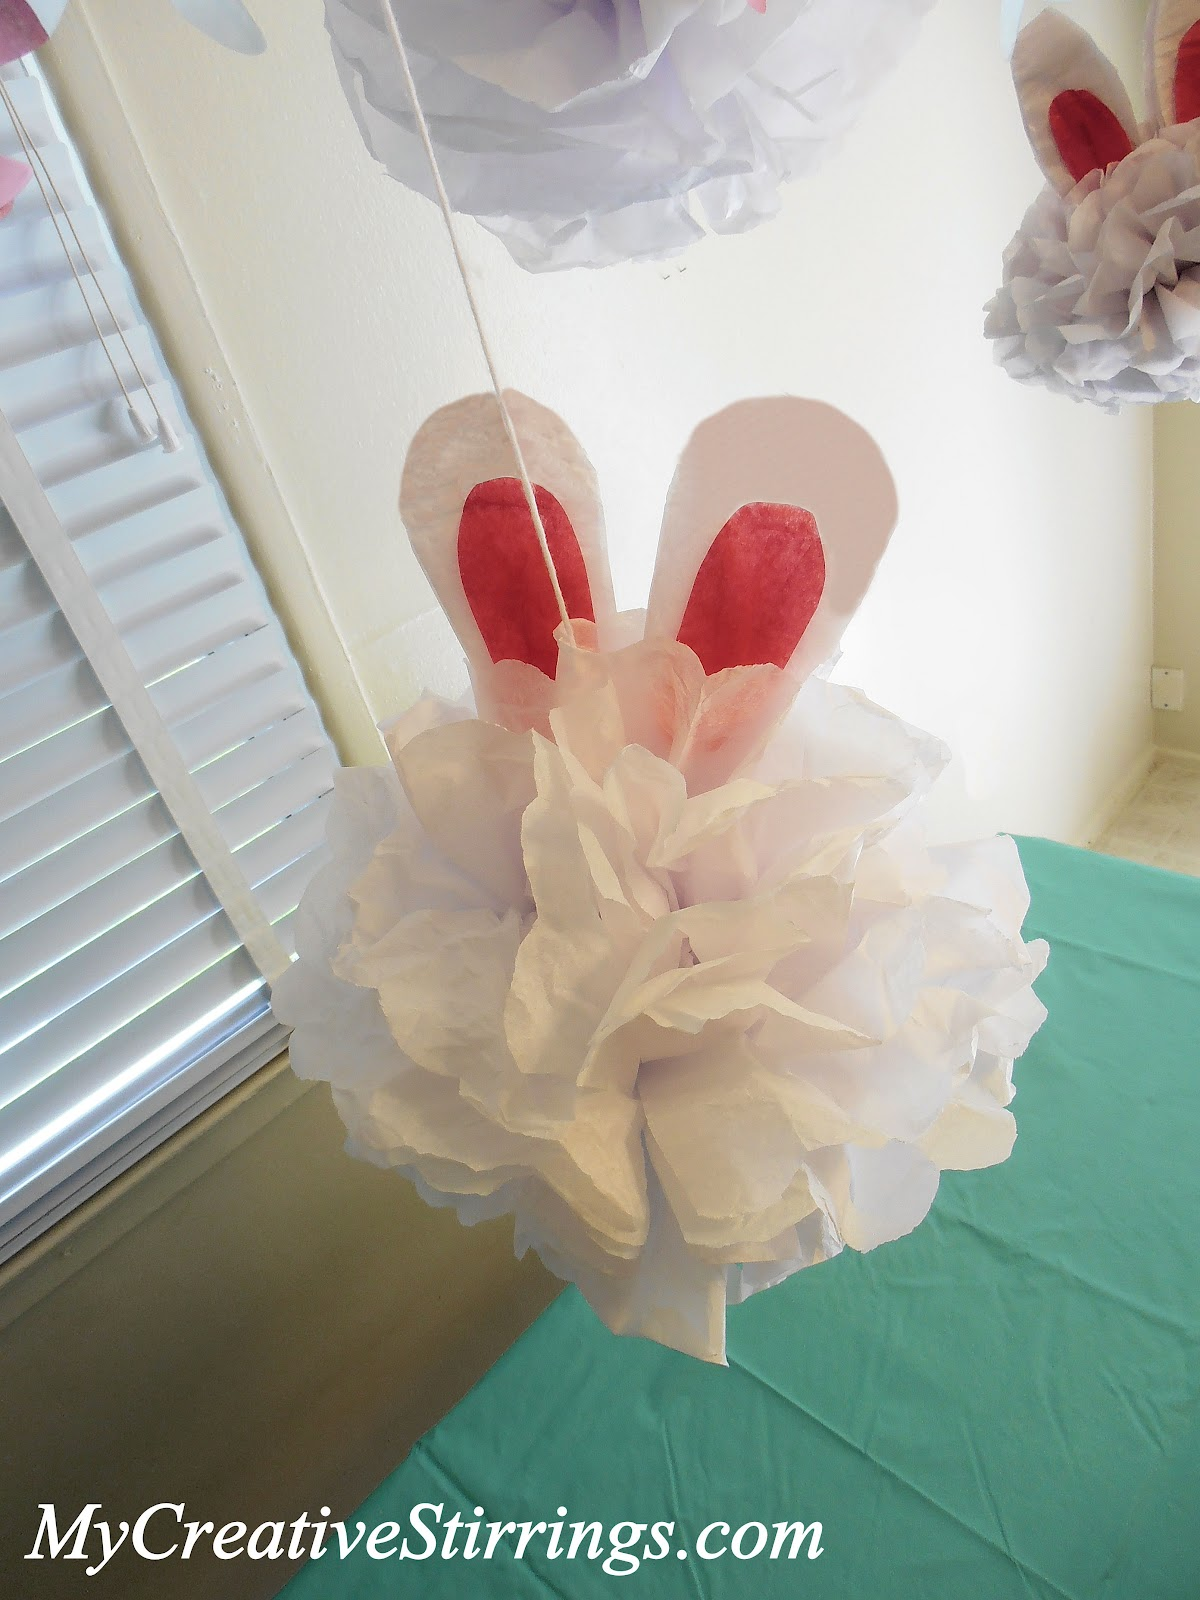 My creative stirrings april 2012 for Creative tissue paper ideas